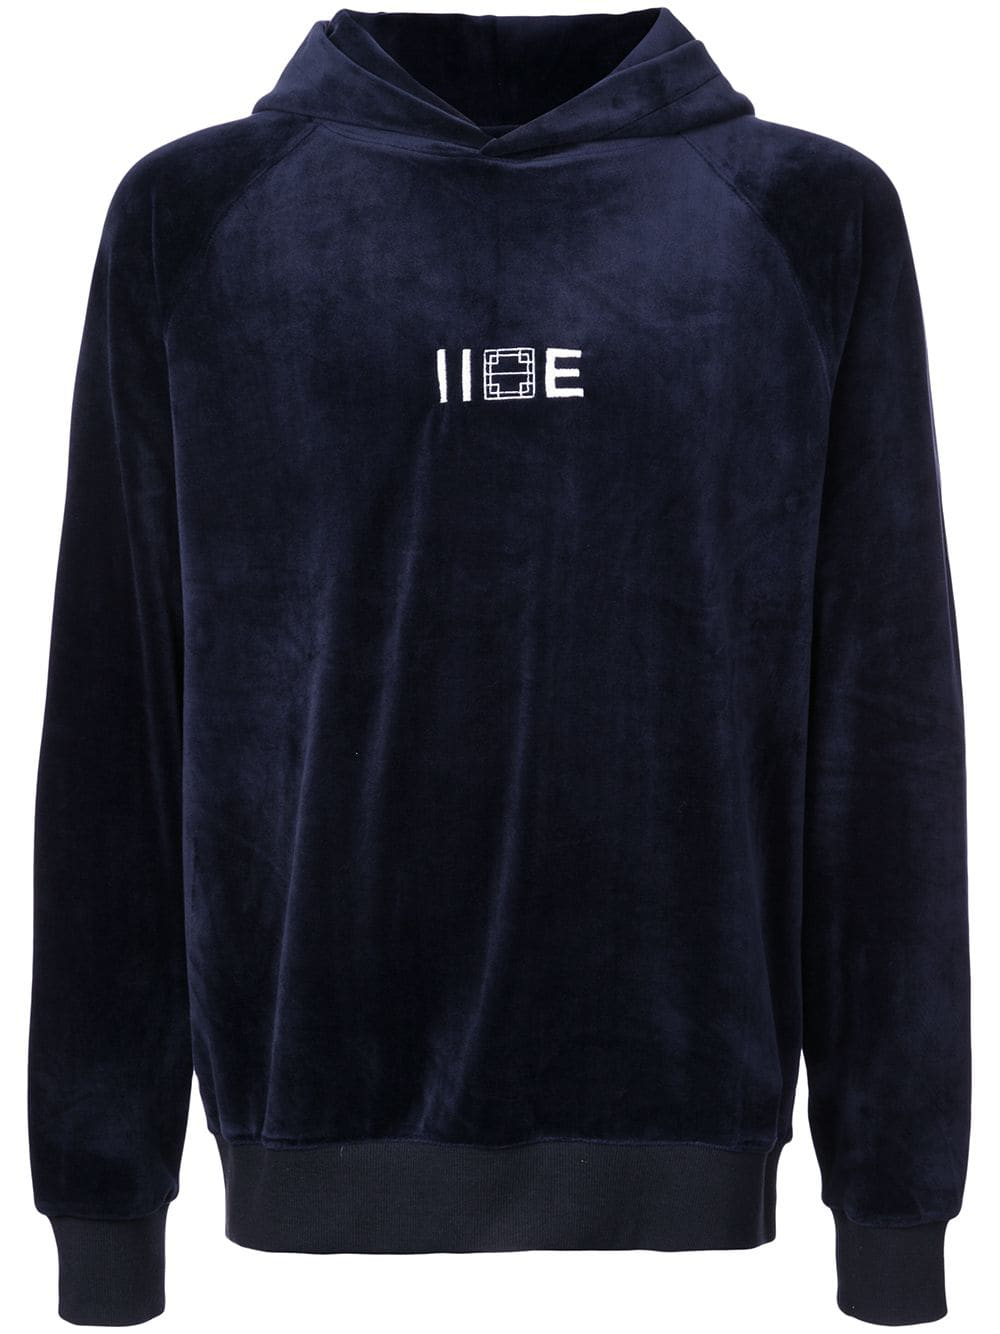 Iise Logo Hooded Sweatshirt.